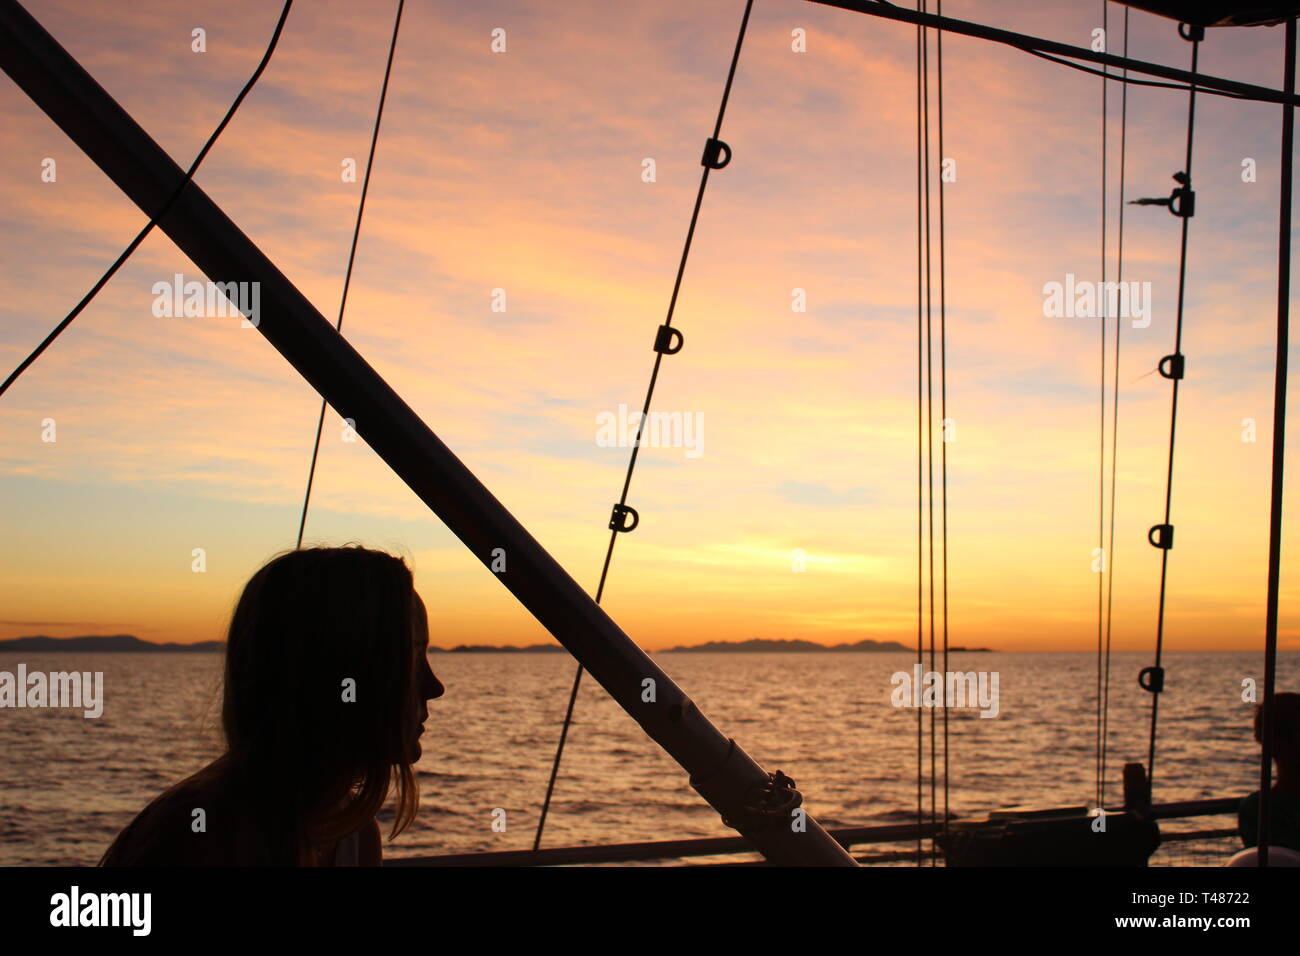 Watch the sunset from a sailing boat in the Whitsundays, Australia - Stock Image